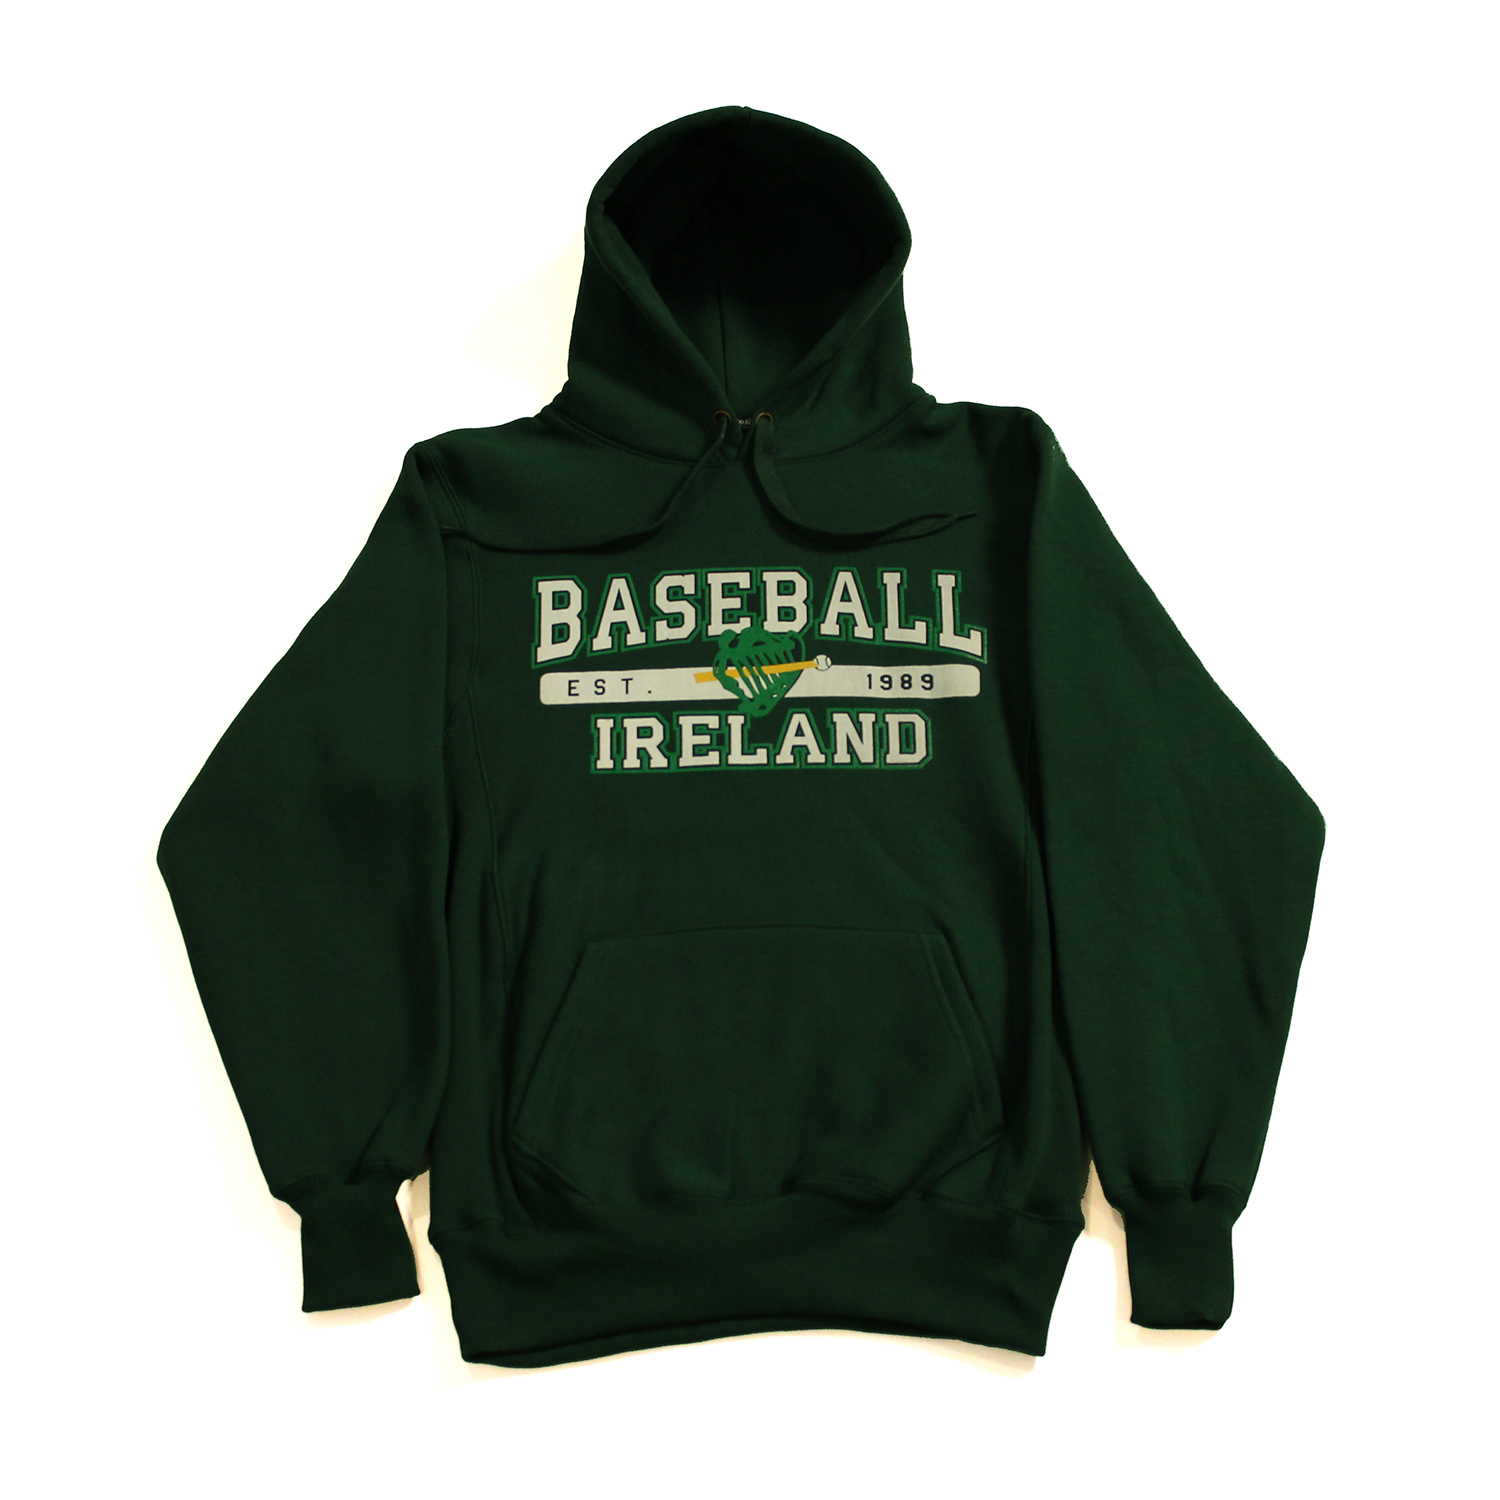 Baseball Ireland Hoodies